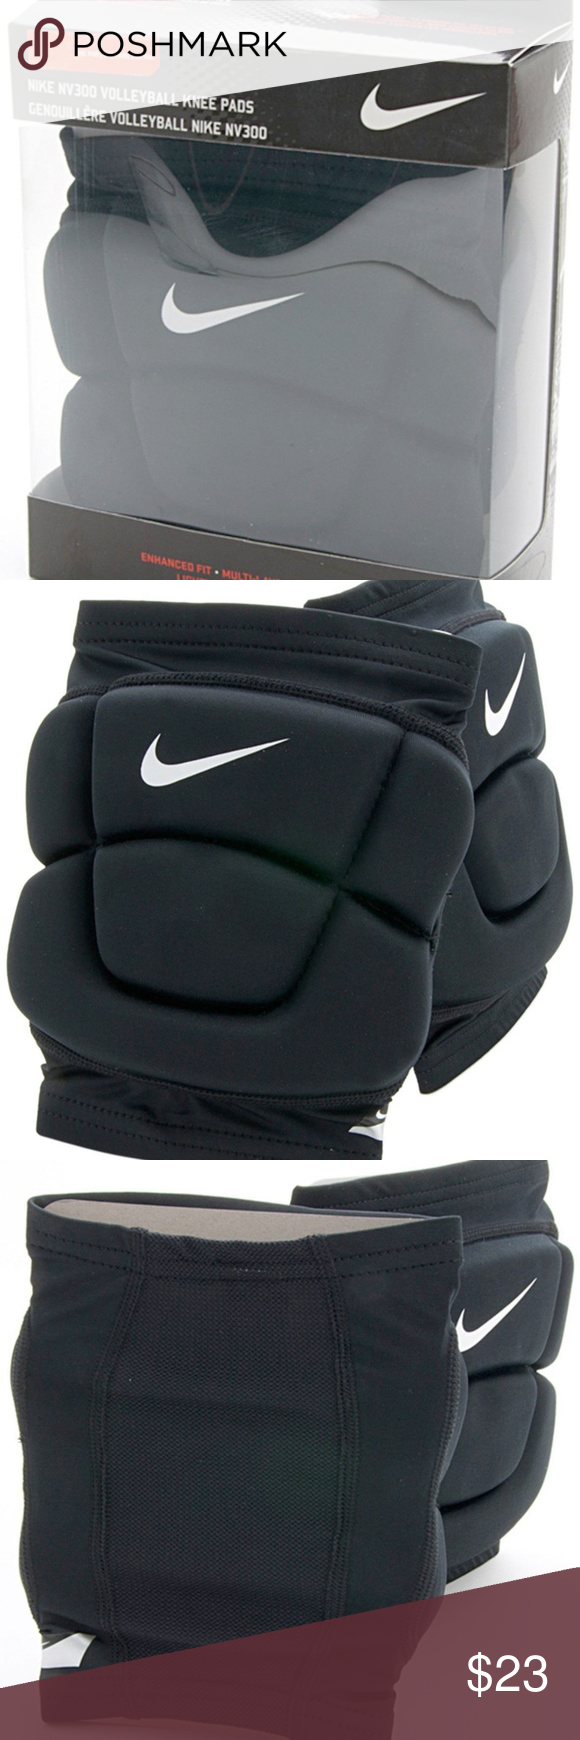 Nike Volleyball Knee Pads Nv300 Size Medium Large Nike Id Vb0068 Any Questions Please Ask Before Purchasing Volleyball Knee Pads Nike Accessories Black Nikes